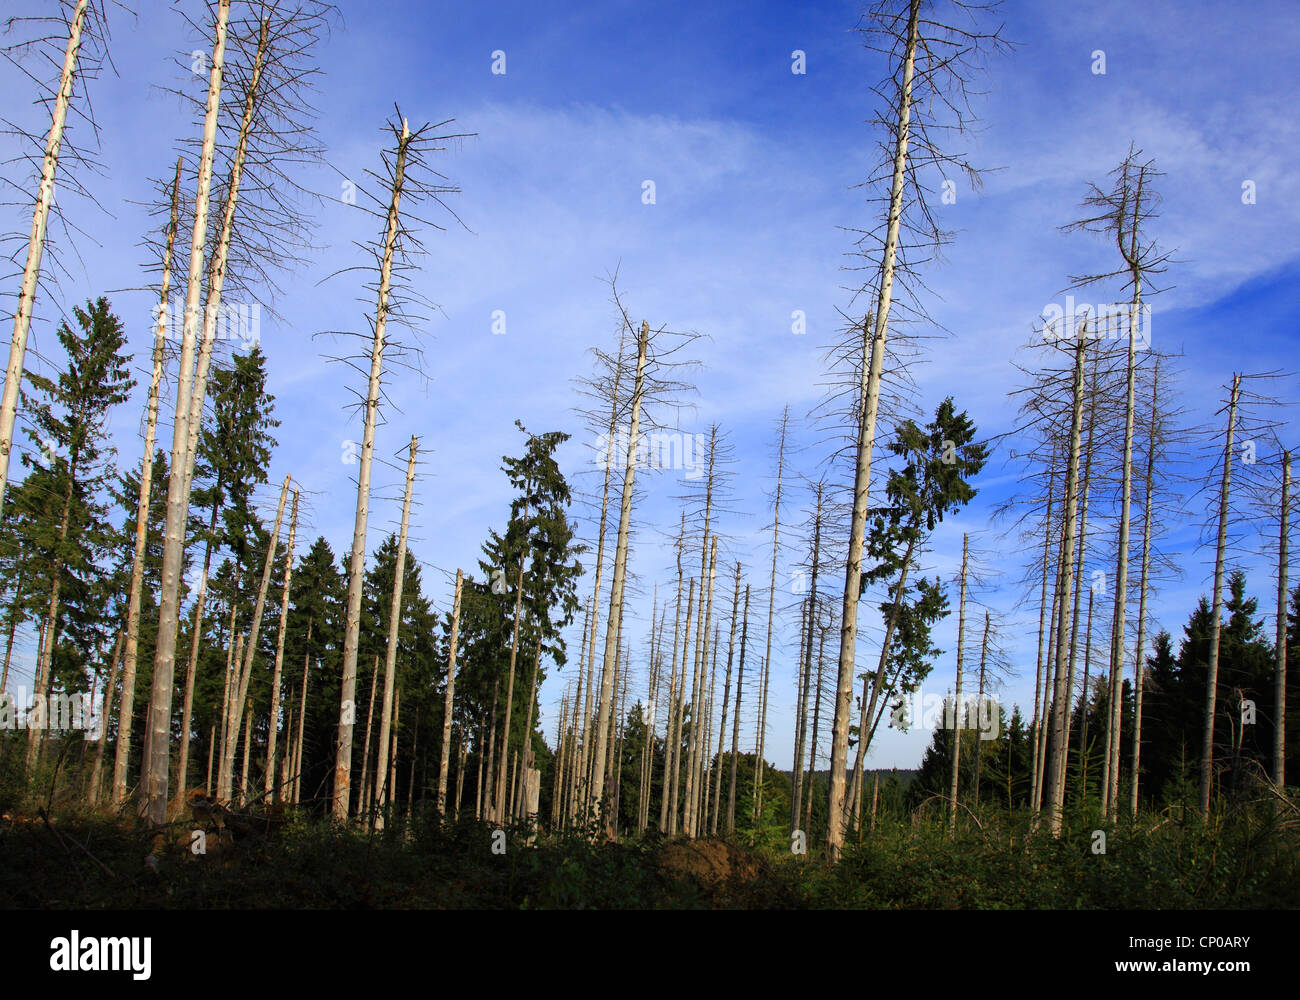 Norway spruce (Picea abies), storm losses in a spruce forest after Kyrill 2007, Germany, Eifel National Park - Stock Image